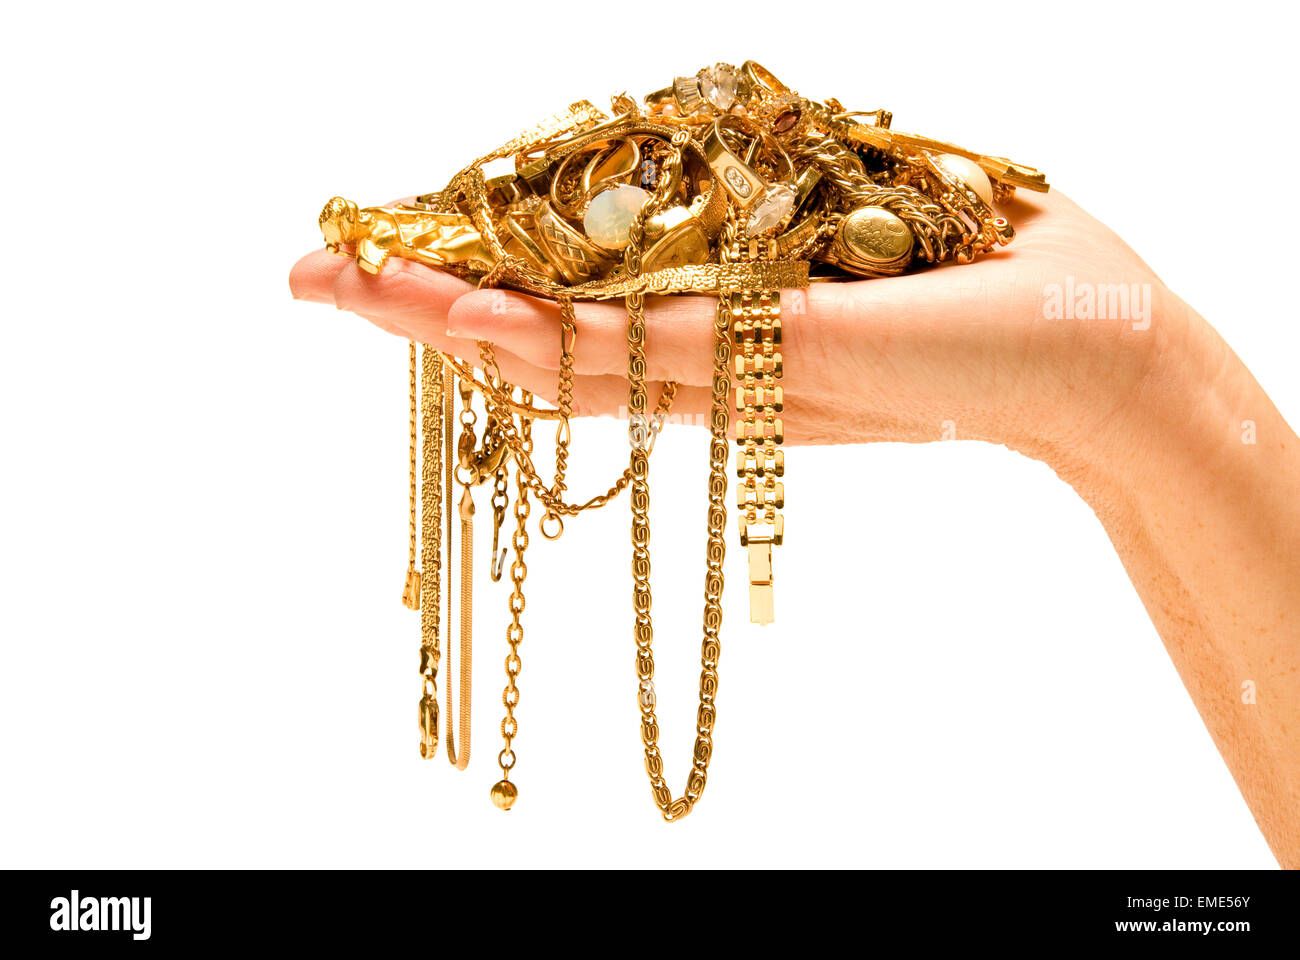 Hand Holding Expensive Gold Jewelry - Stock Image